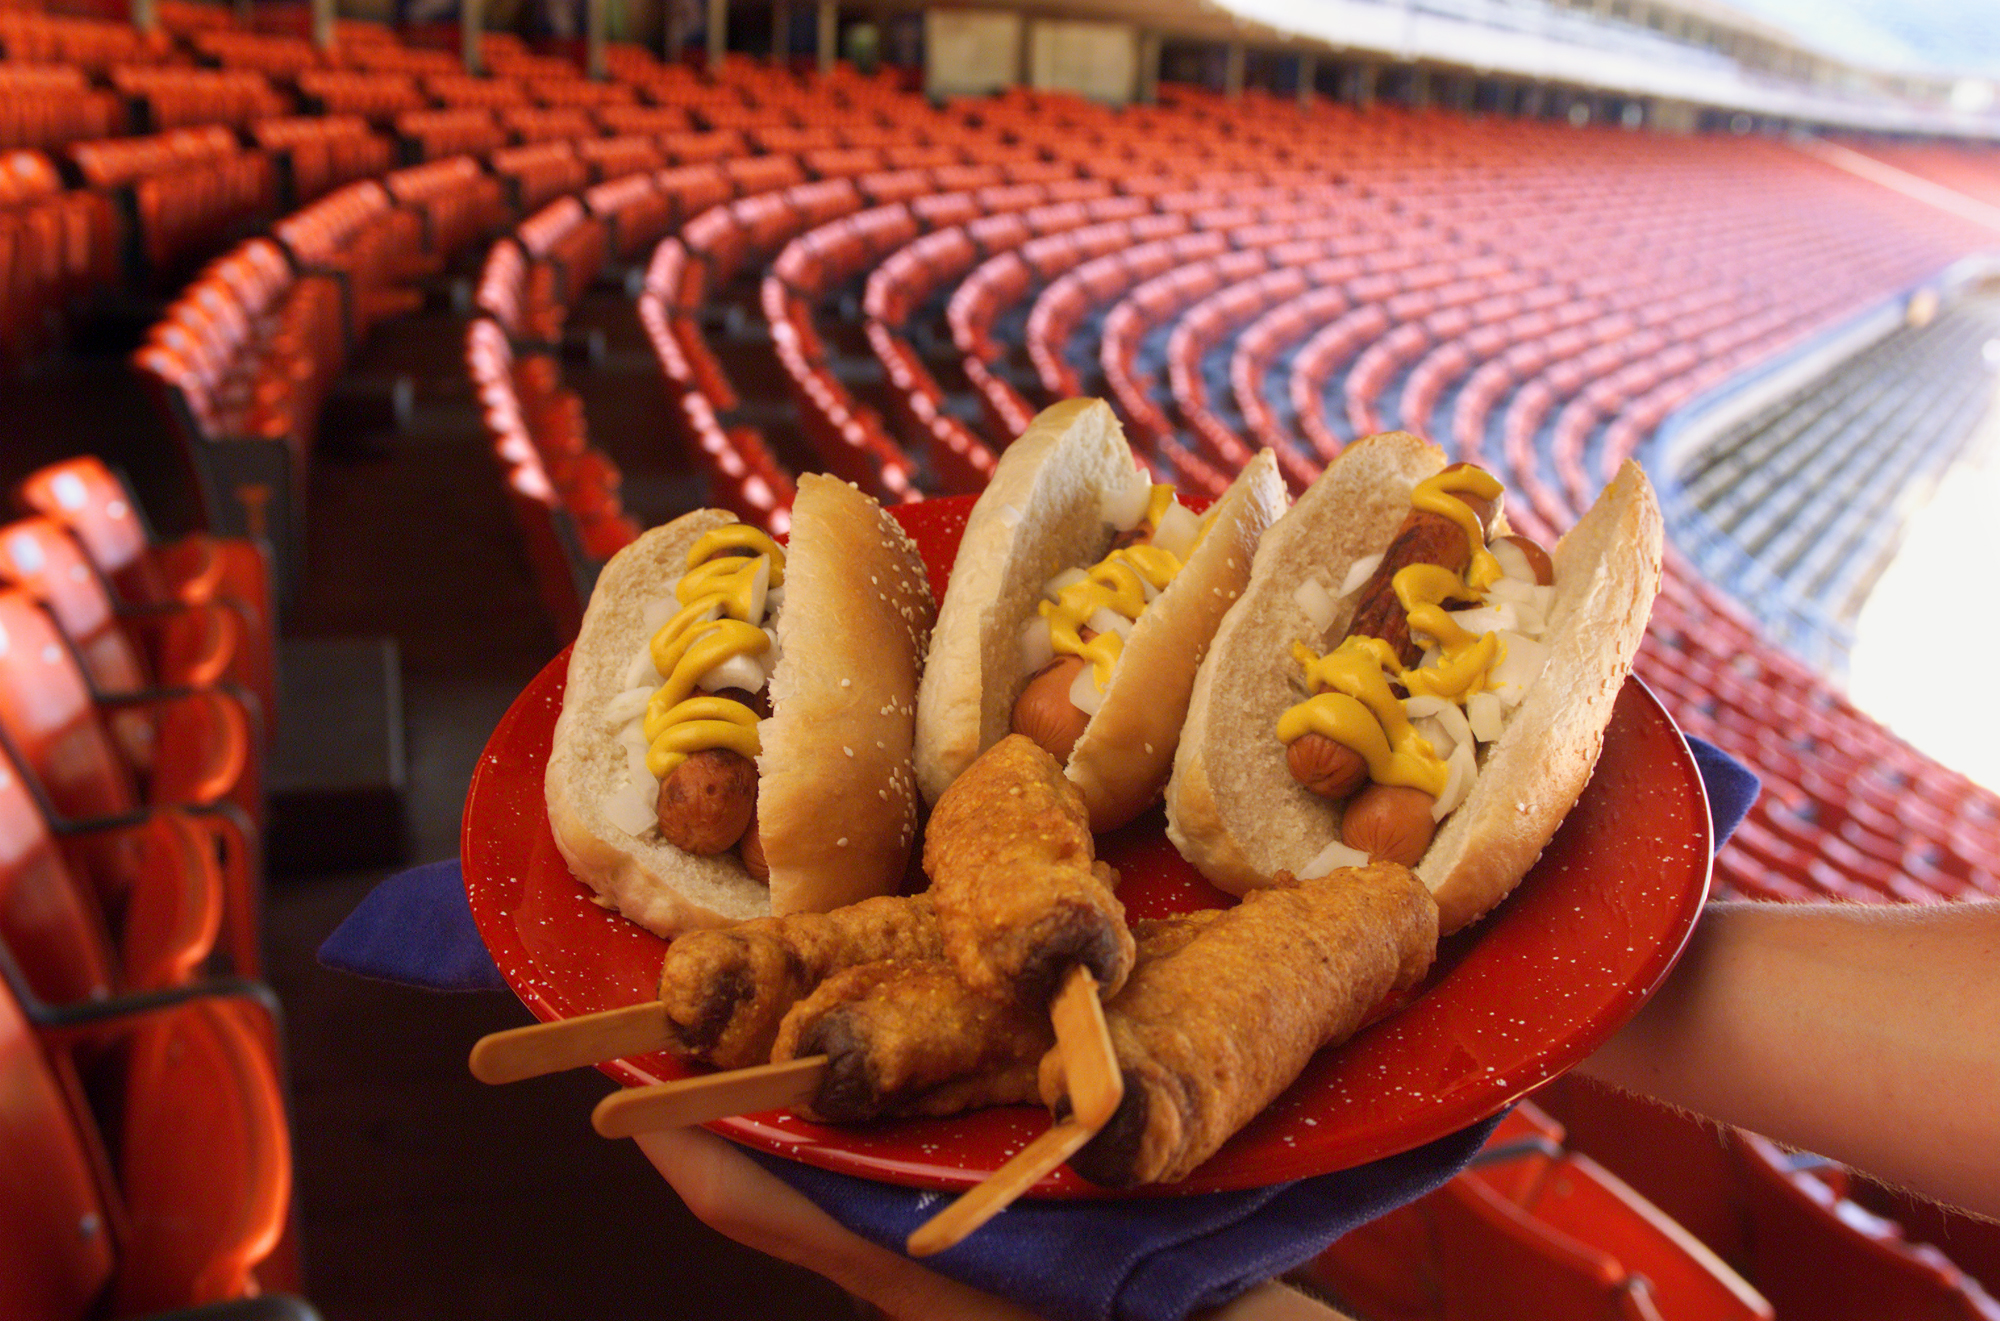 Dodger Stadium is the backdrop for baseball inspired food. A plate full of Homemade Hot Dog Buns wit